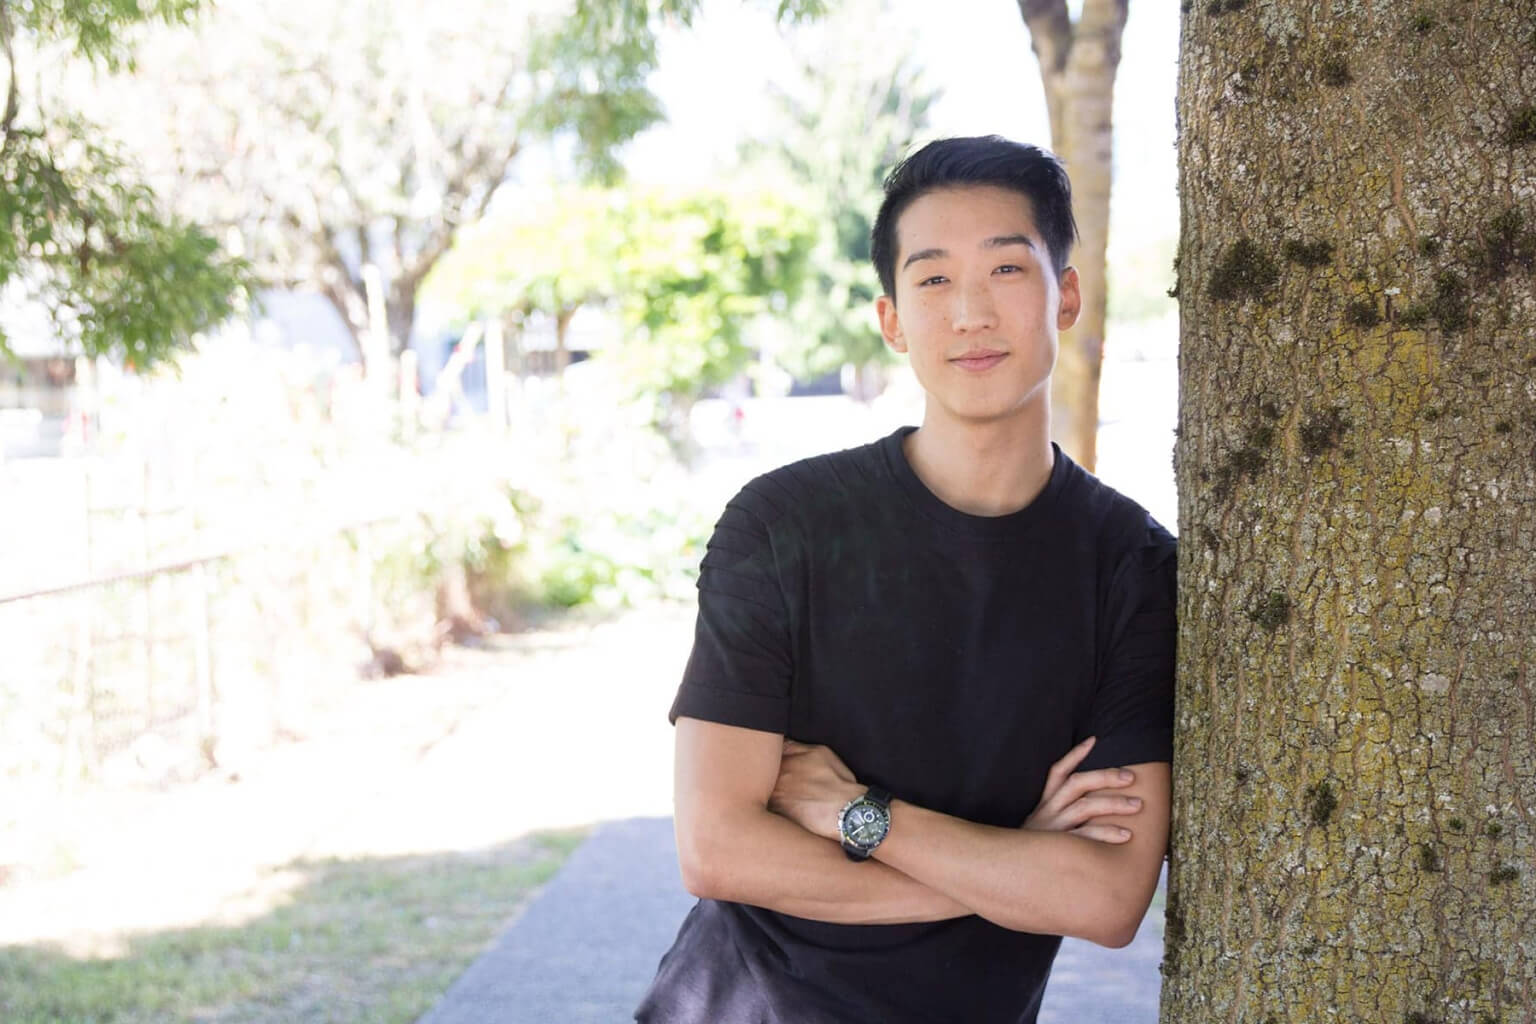 Habits and Routines of Entrepreneur and Writer Sean Kim